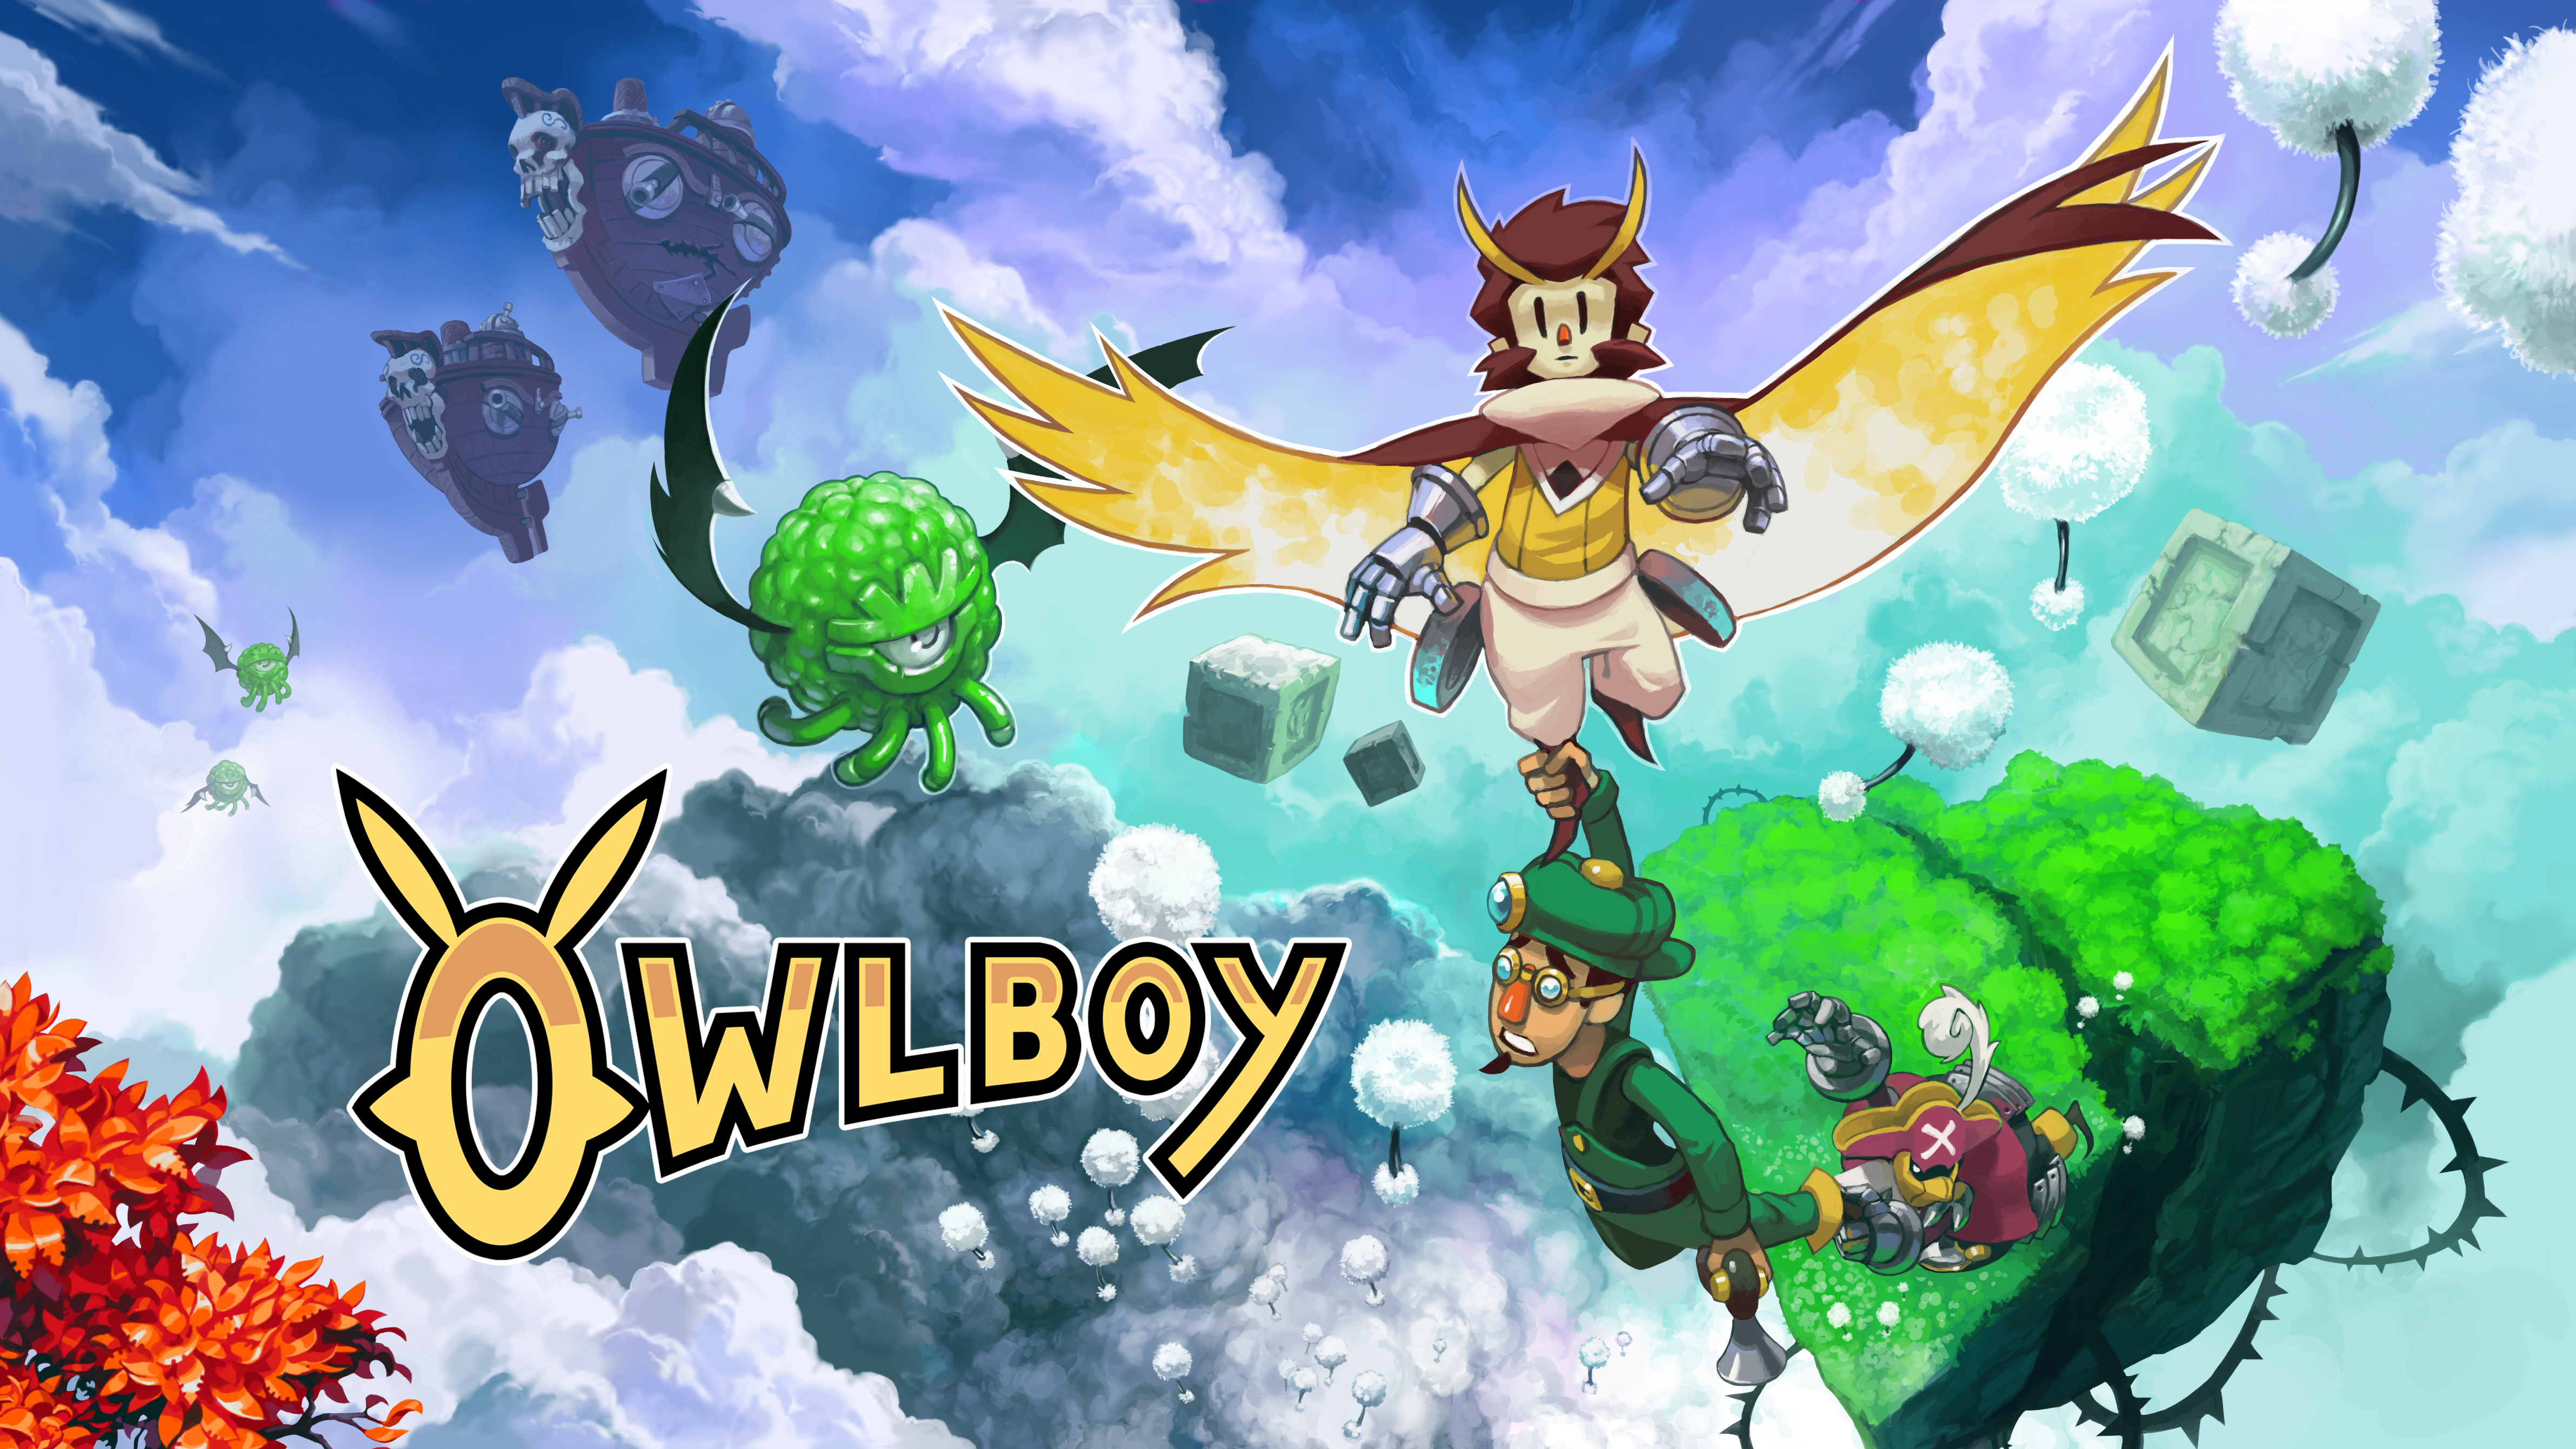 February Indie games releases 2018 Owlboy image